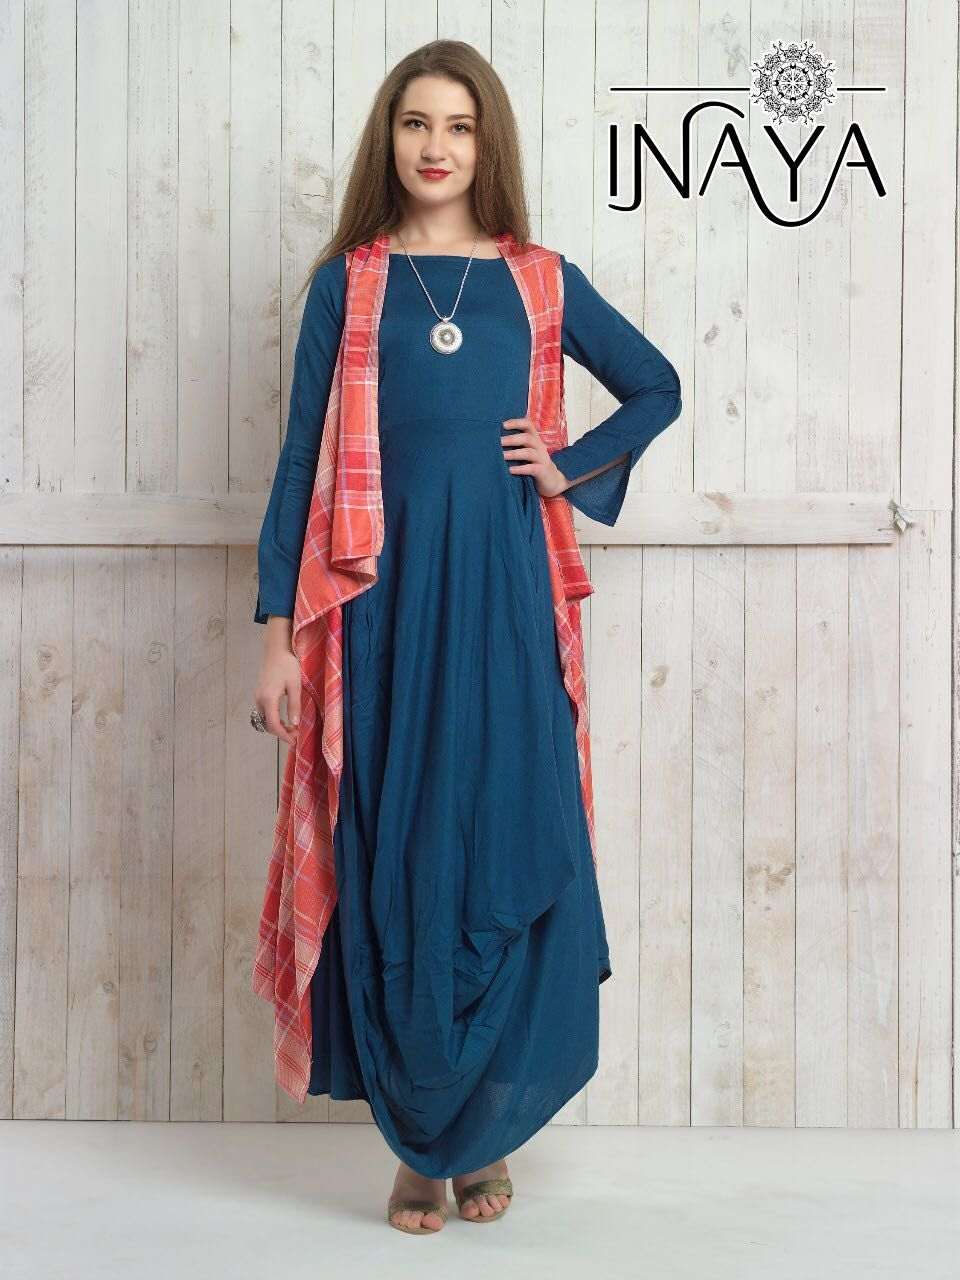 da197de27a190 Ready 2 wear ❄ - INAYA By( STUDIO LIBAS) ➖➖➖➖➖➖➖ 📍 FABRIC Jacket :- pure  modal cotton ( very soft n skin friendly) Kurti :- pure imported reyon ...